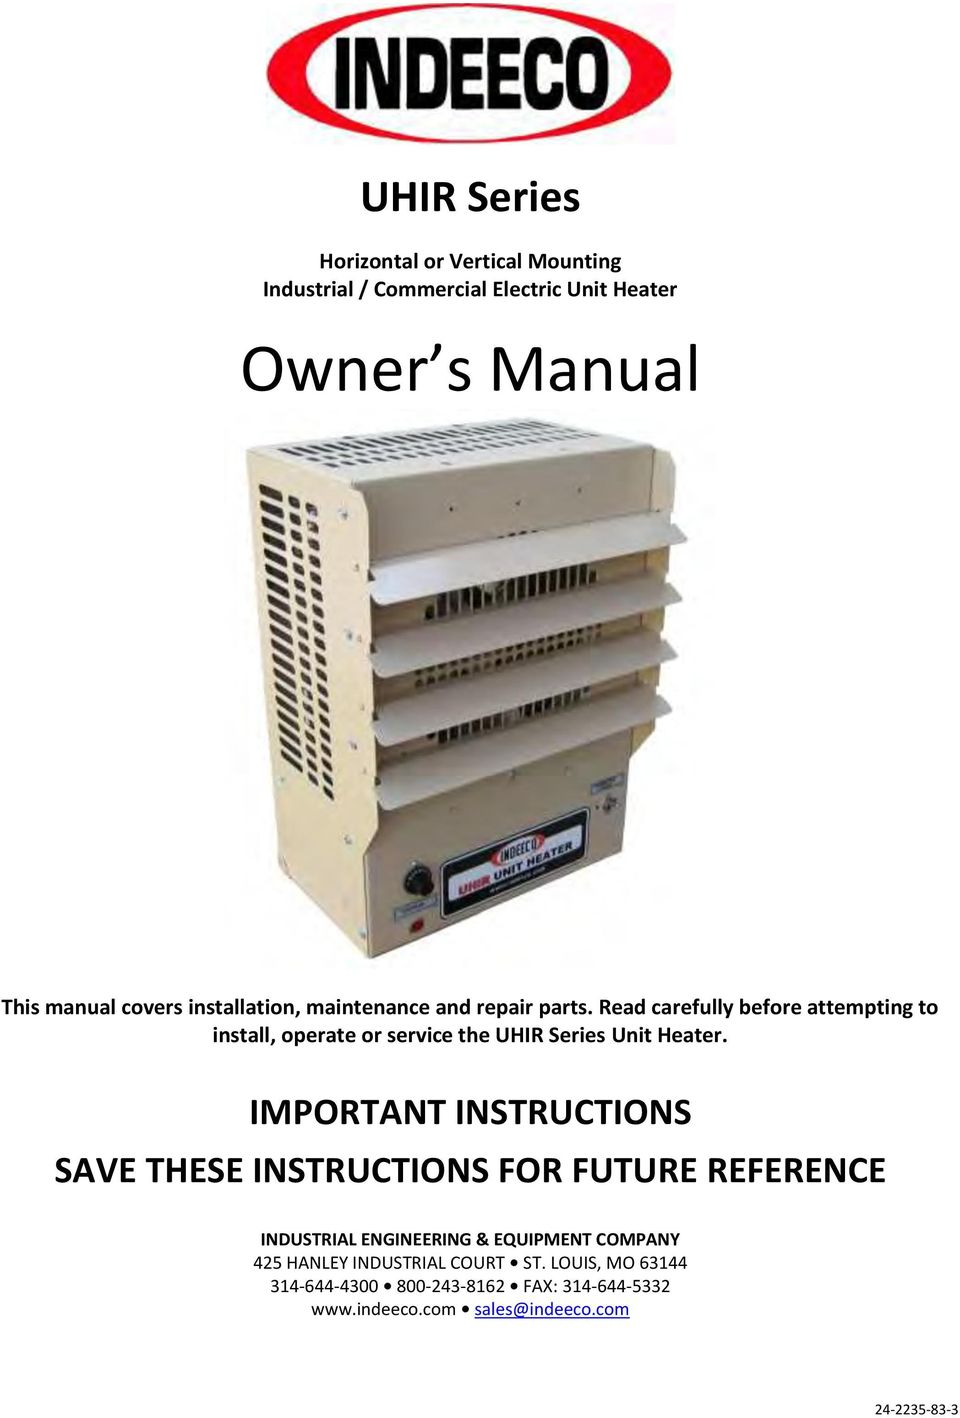 Read carefully before attempting to install, operate or service the UHIR Series Unit Heater.